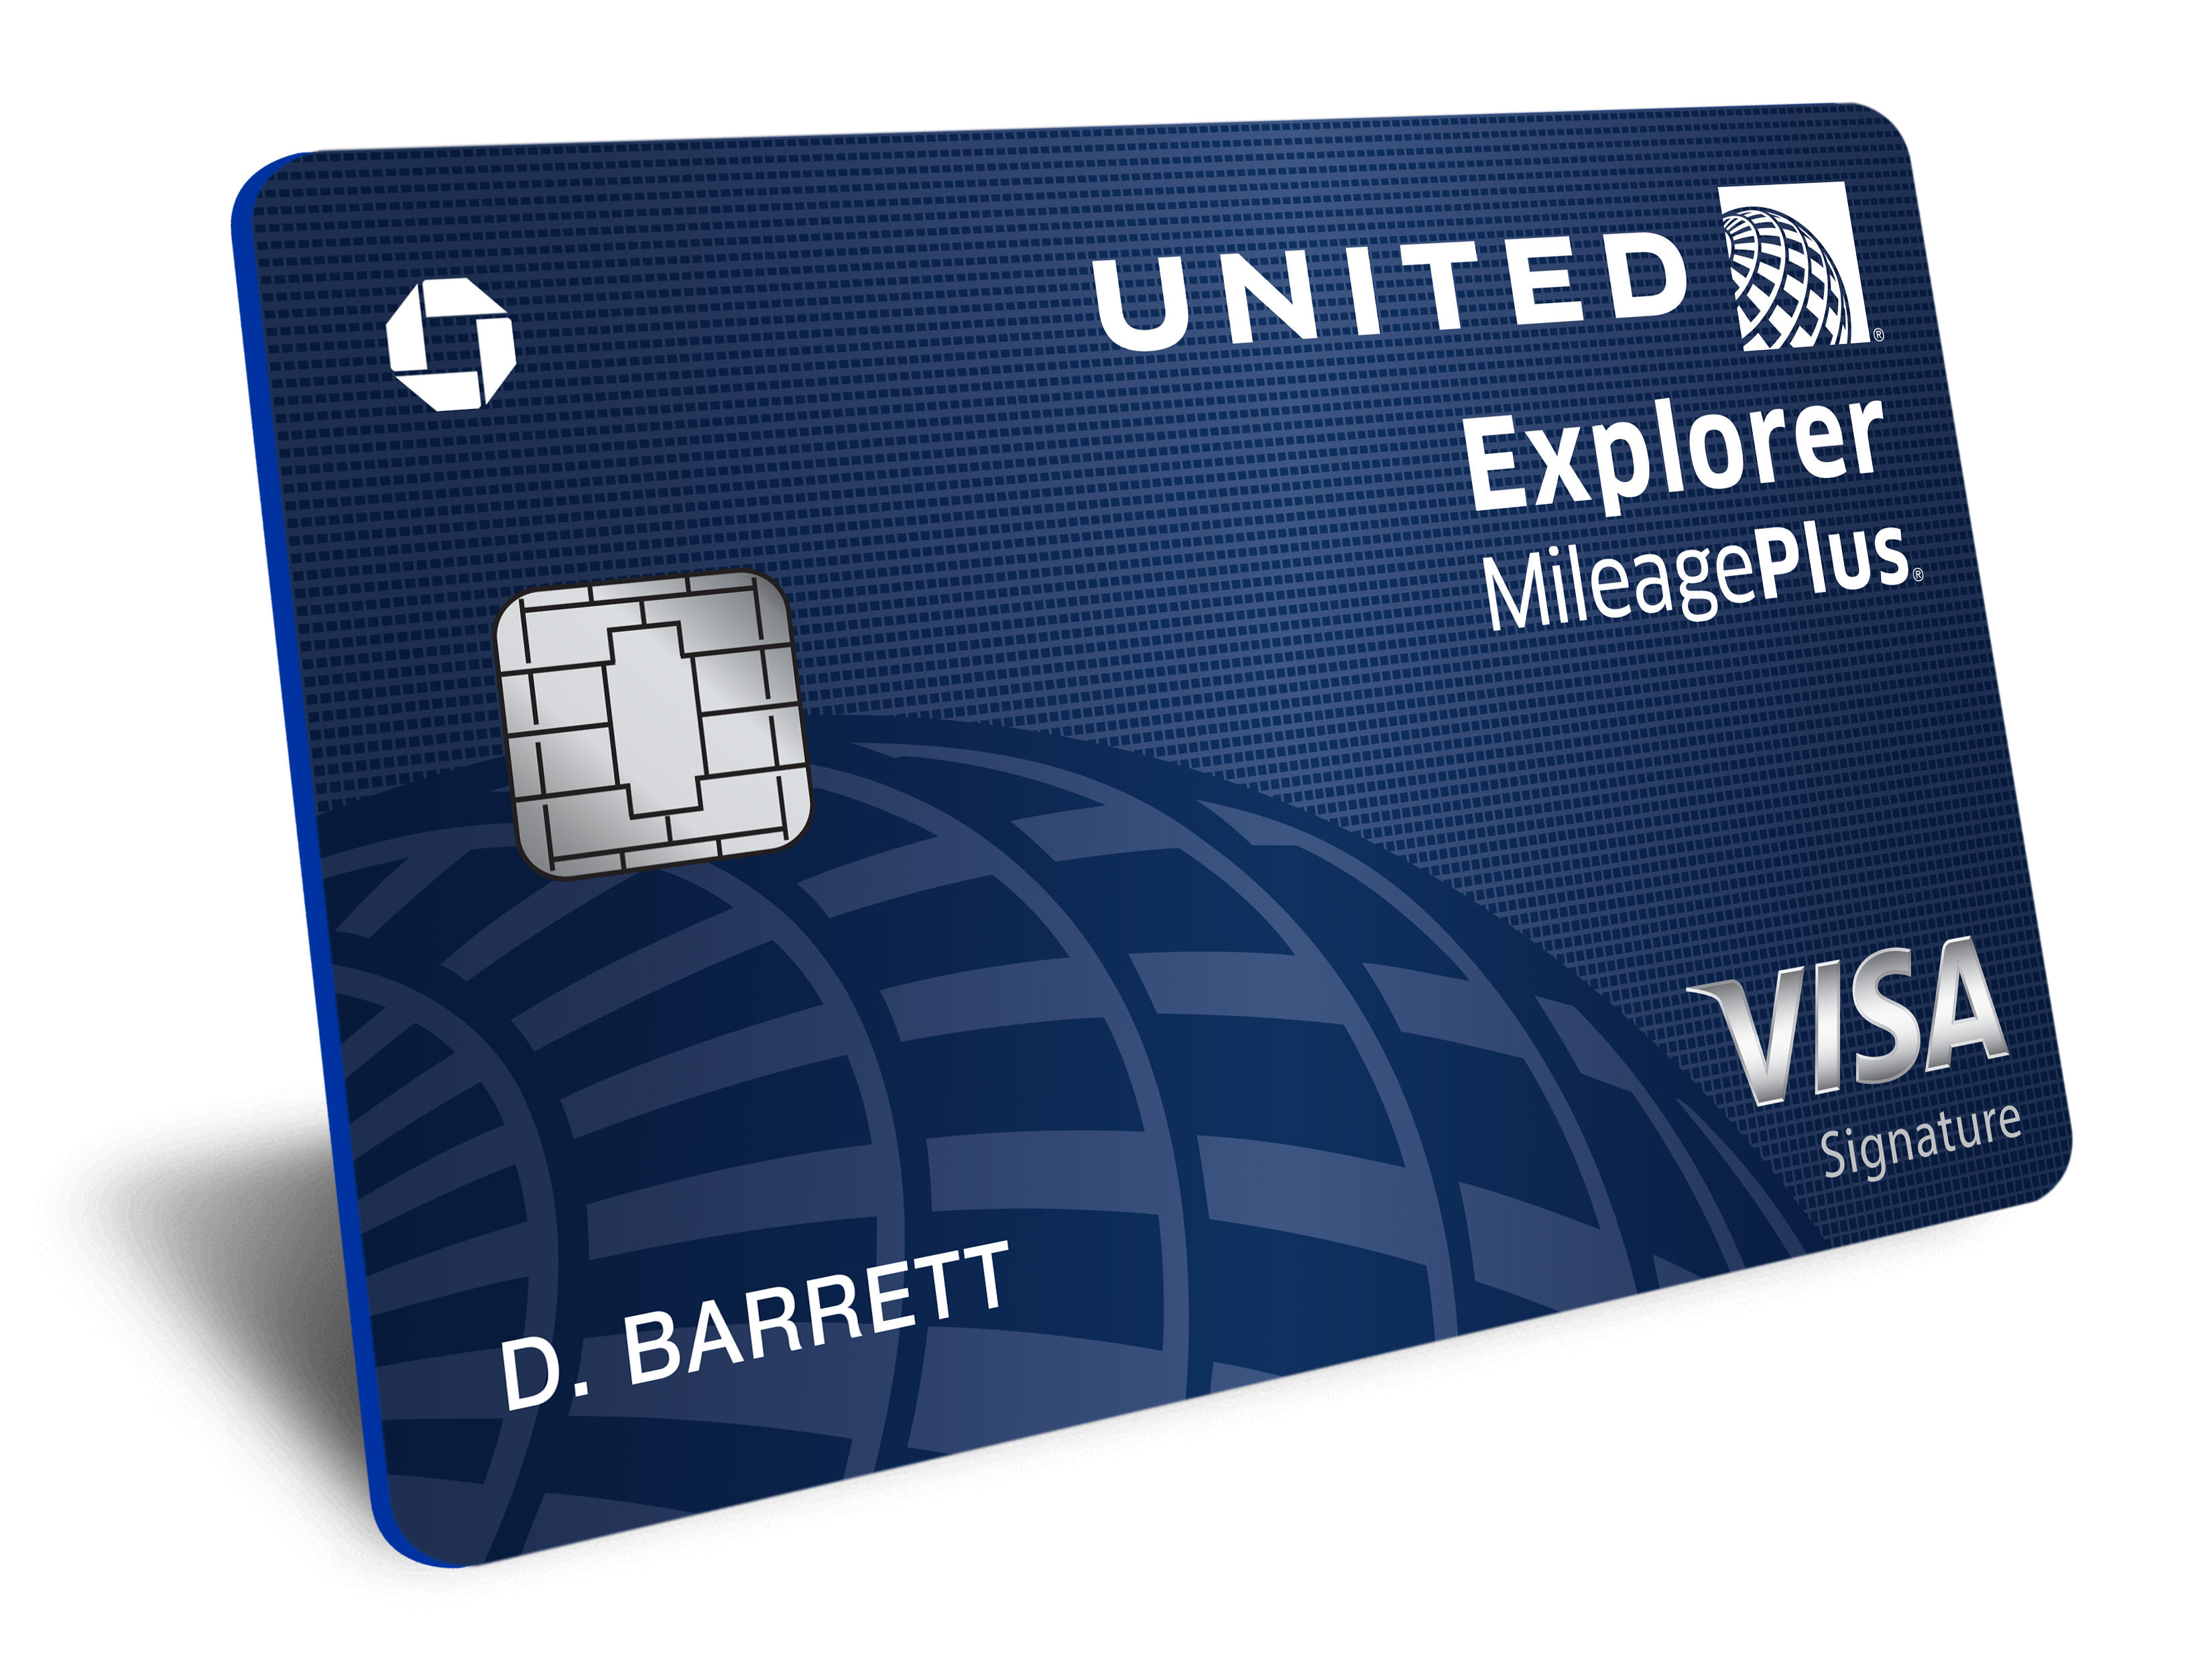 New united explorer card cardmembers are now rewarded in the air chase card services ashley dodd 302 282 5011 ashleyeddchase colourmoves